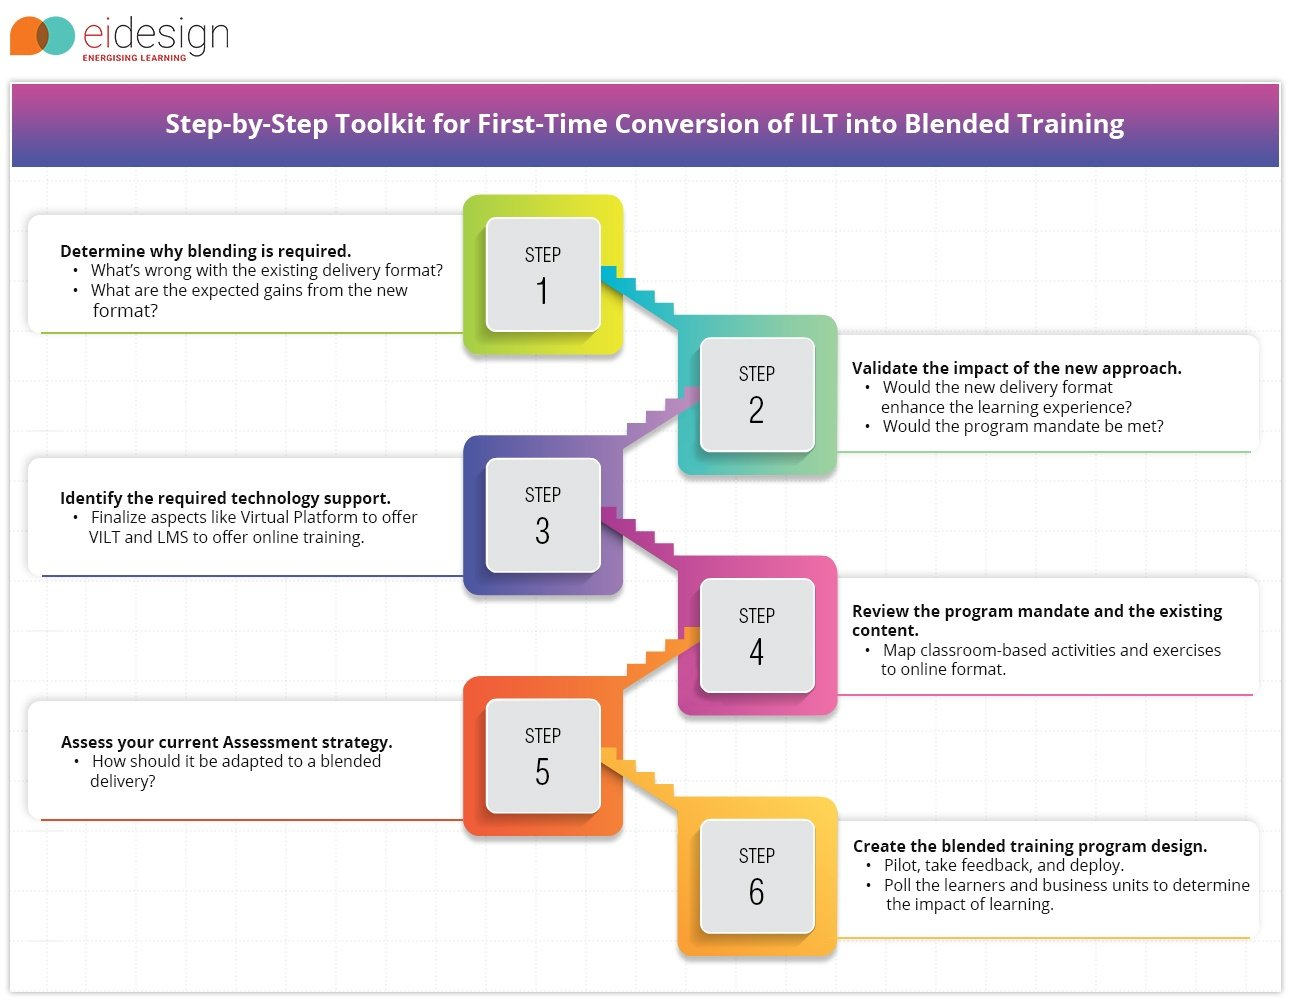 EI Design-Step-by-Step Toolkit for First-Time Conversion of ILT into Blended Training